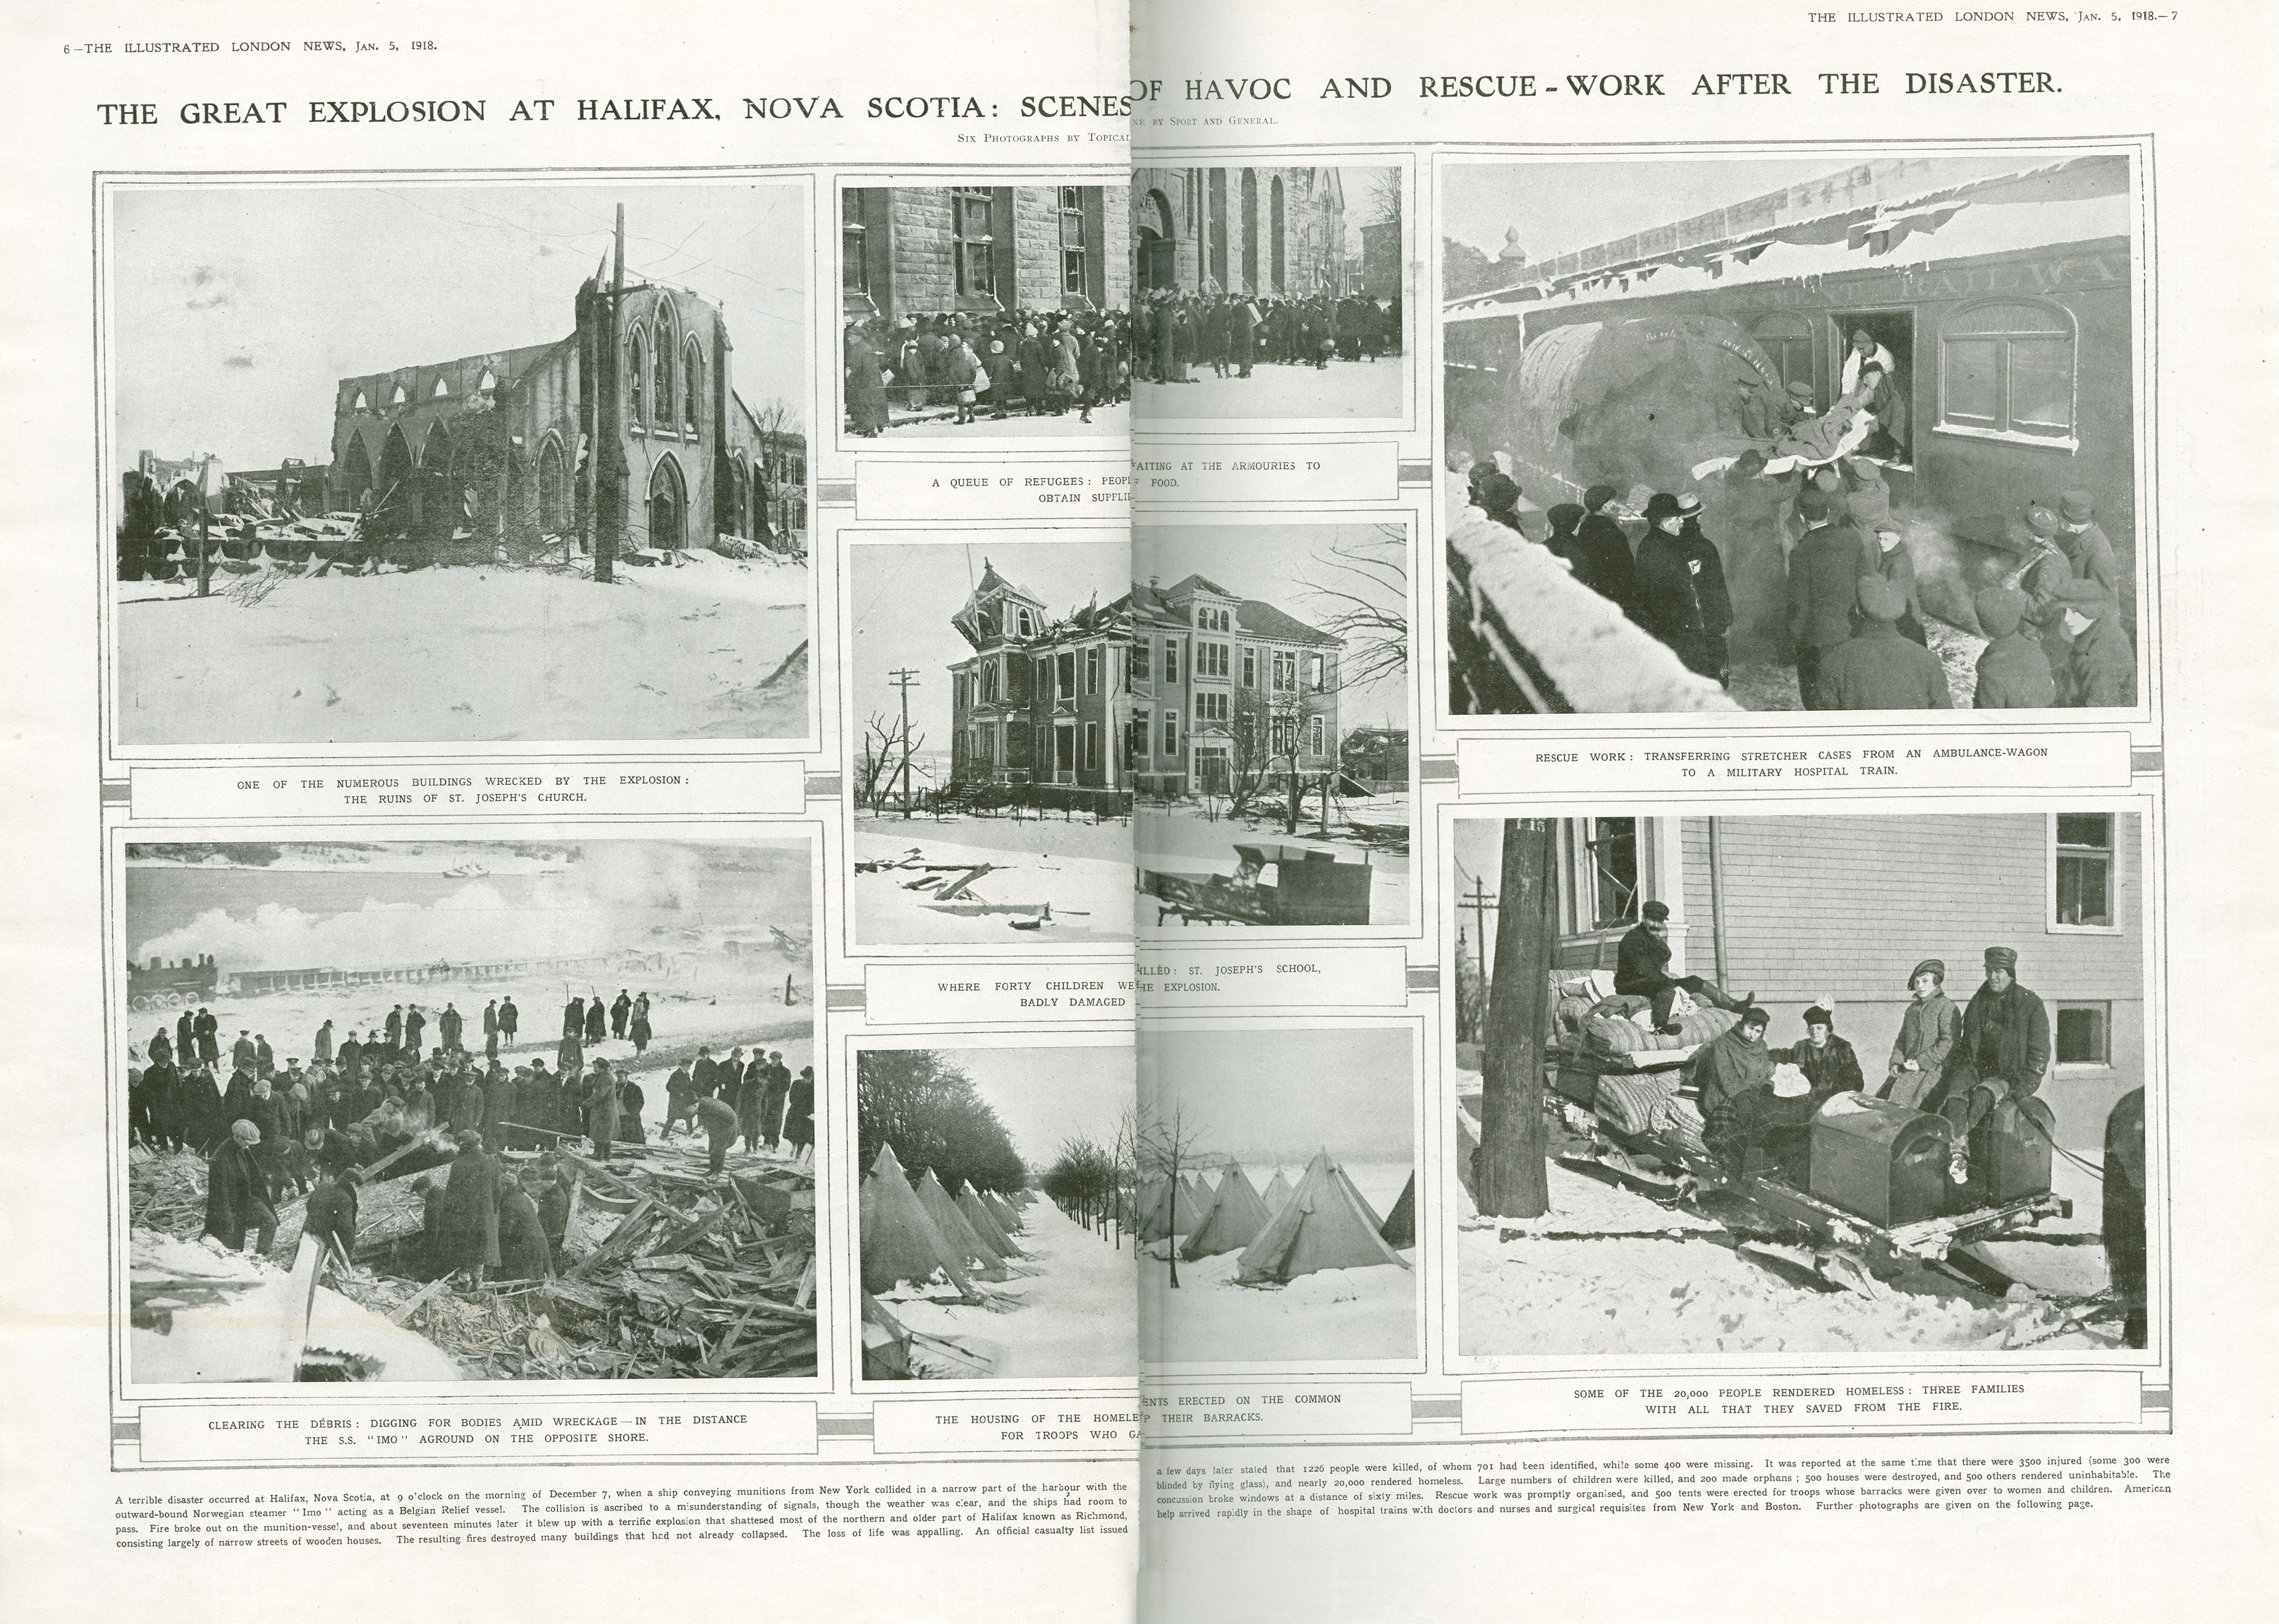 Explosion : The great explosion at Halifax, Nova Scotia:  scenes of havoc and rescue-work after the disaster